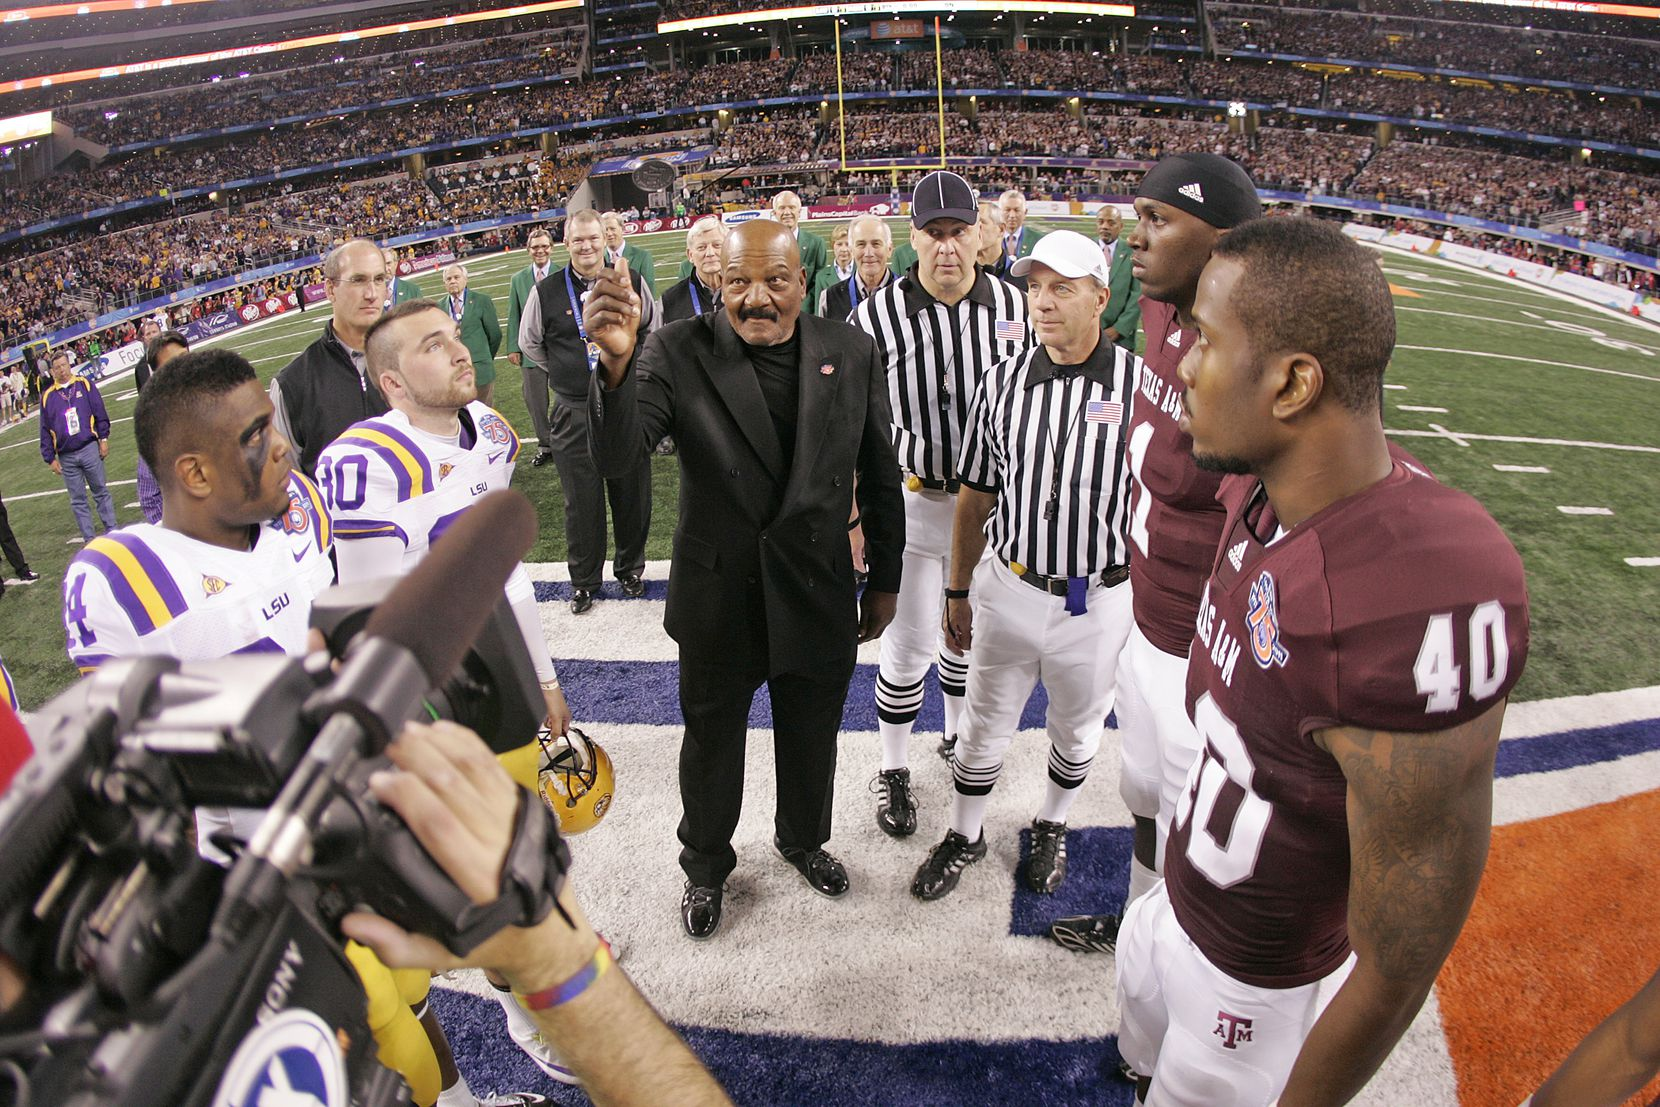 Jim Brown flipped the coin at the 75th anniversary of the Cotton Bowl Classic between LSU and Texas A&M in 2011. Brown represented 75 years of student-athletes that have competed in the Classic.